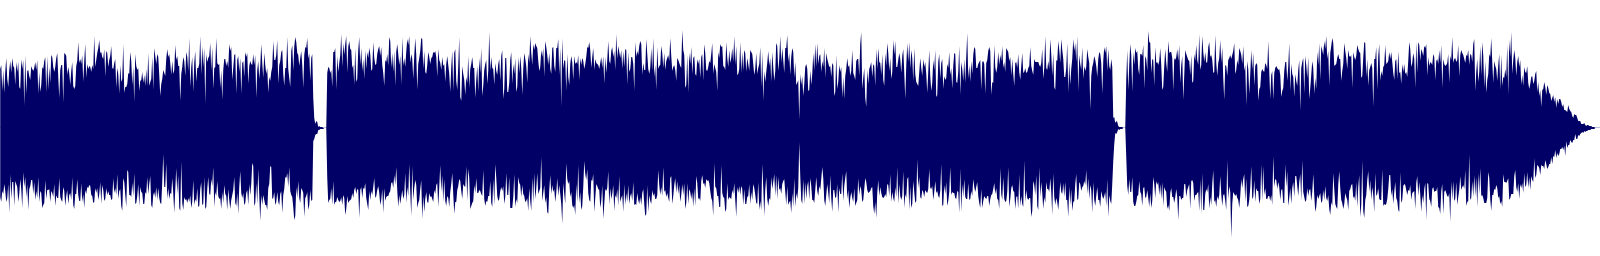 waveform of track #136146